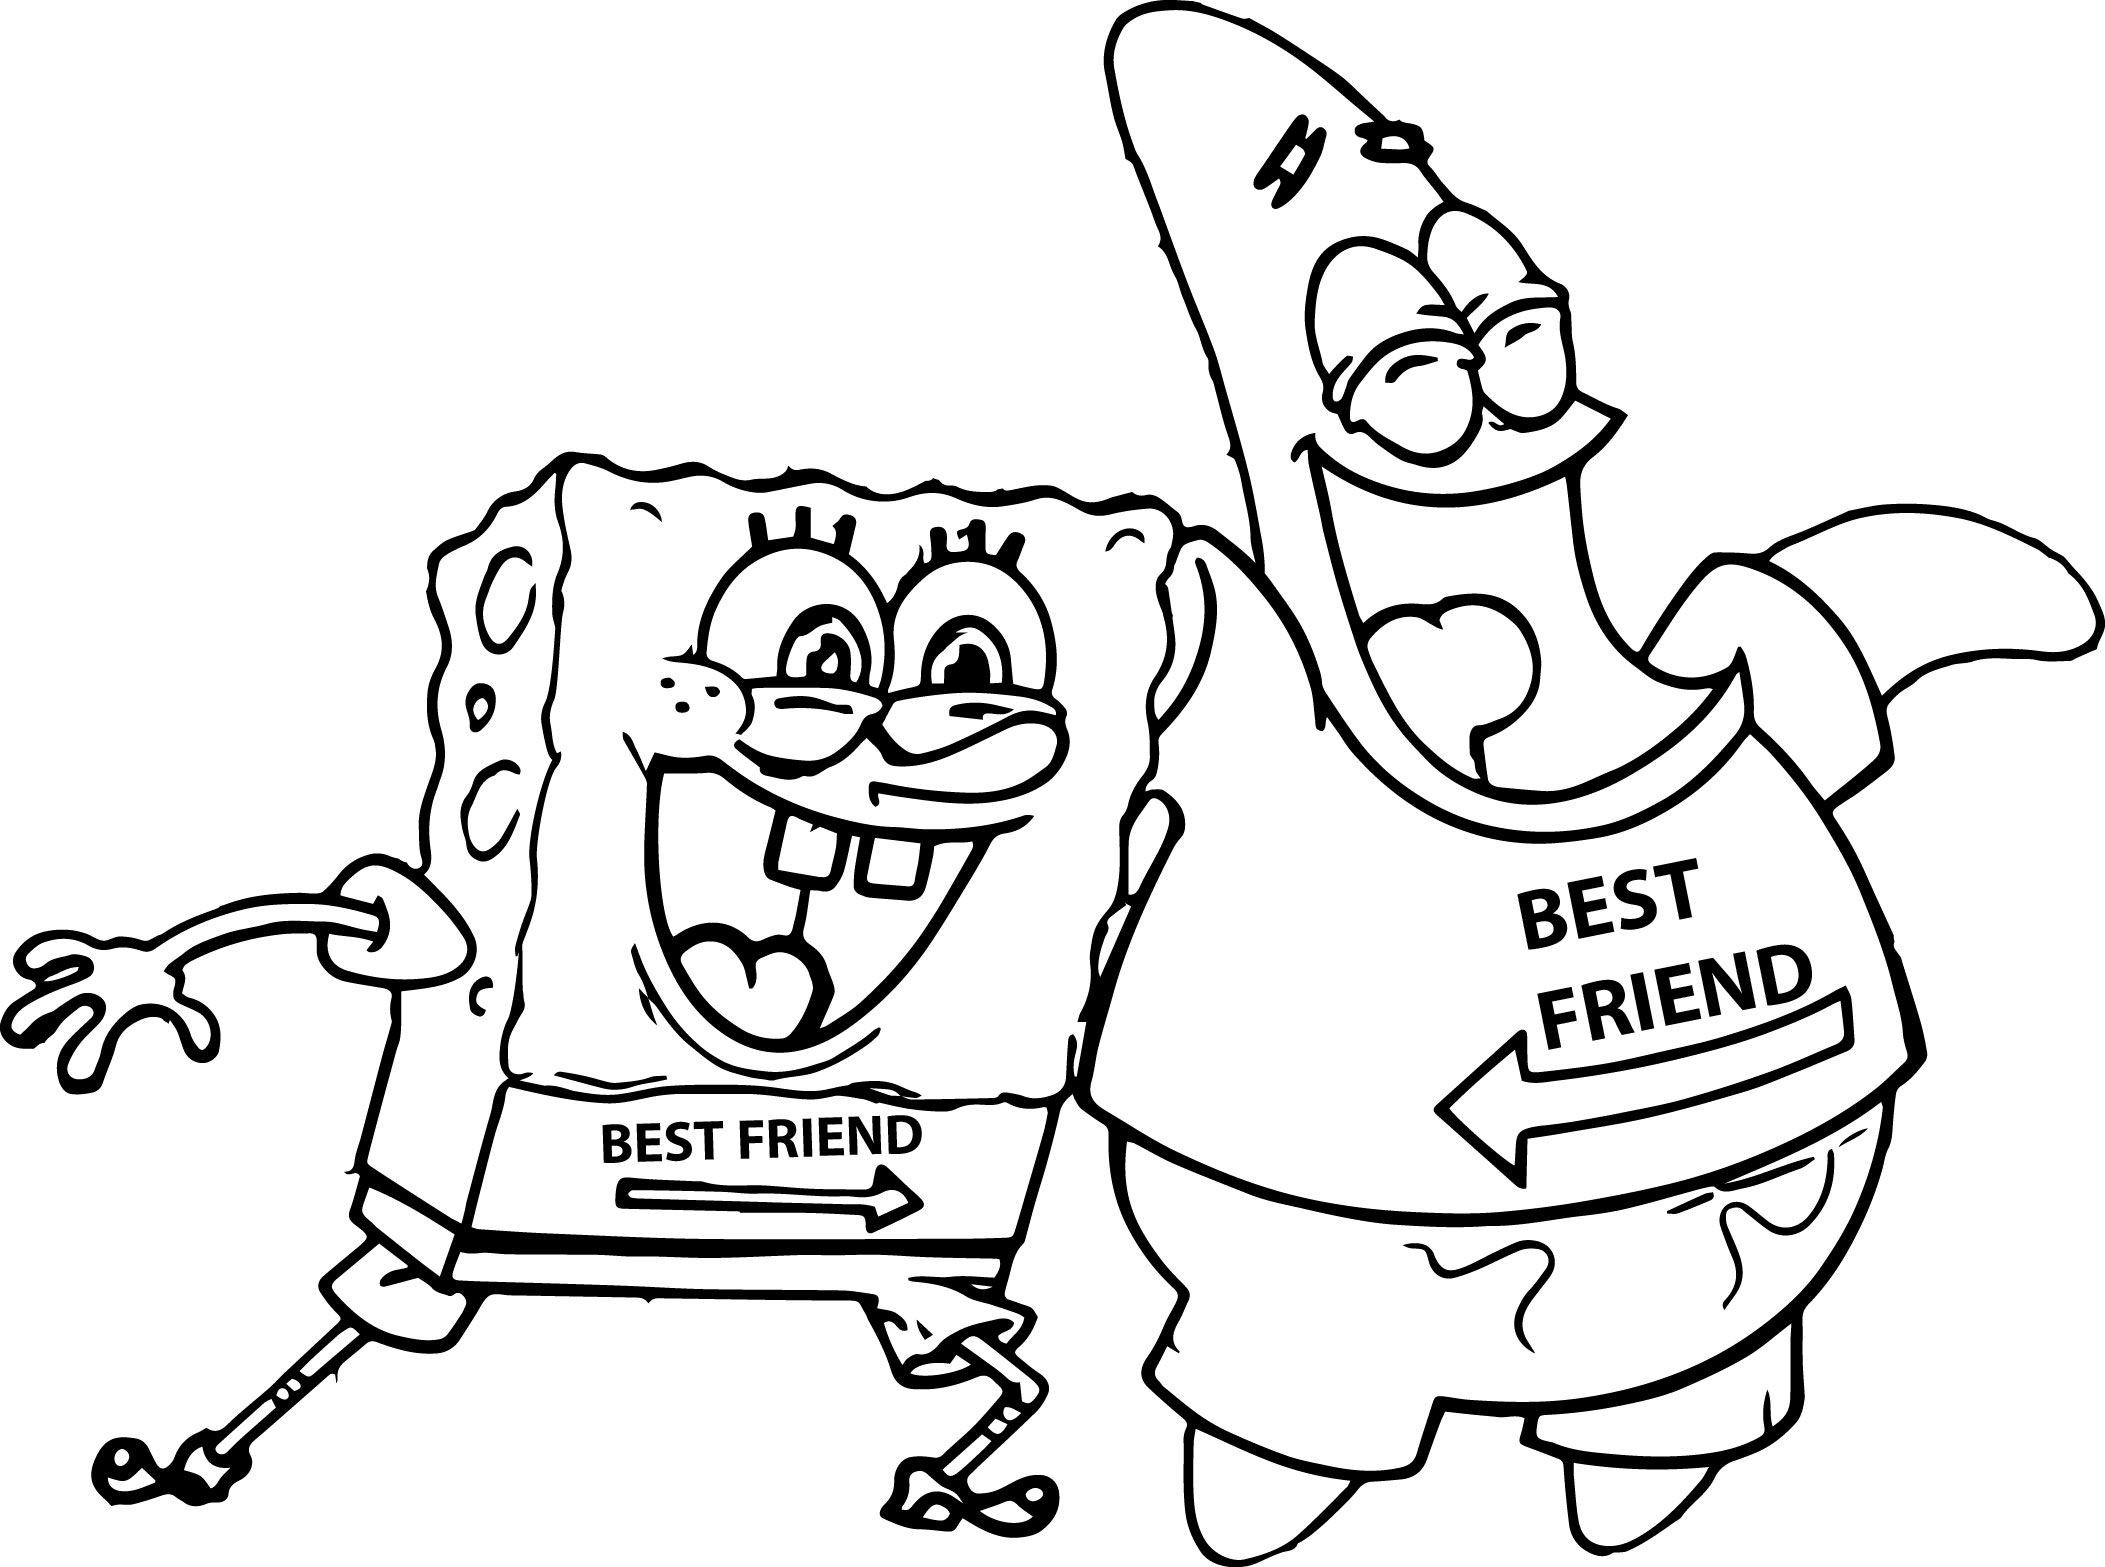 Spongebob Squarepants Pictures To Print And Color